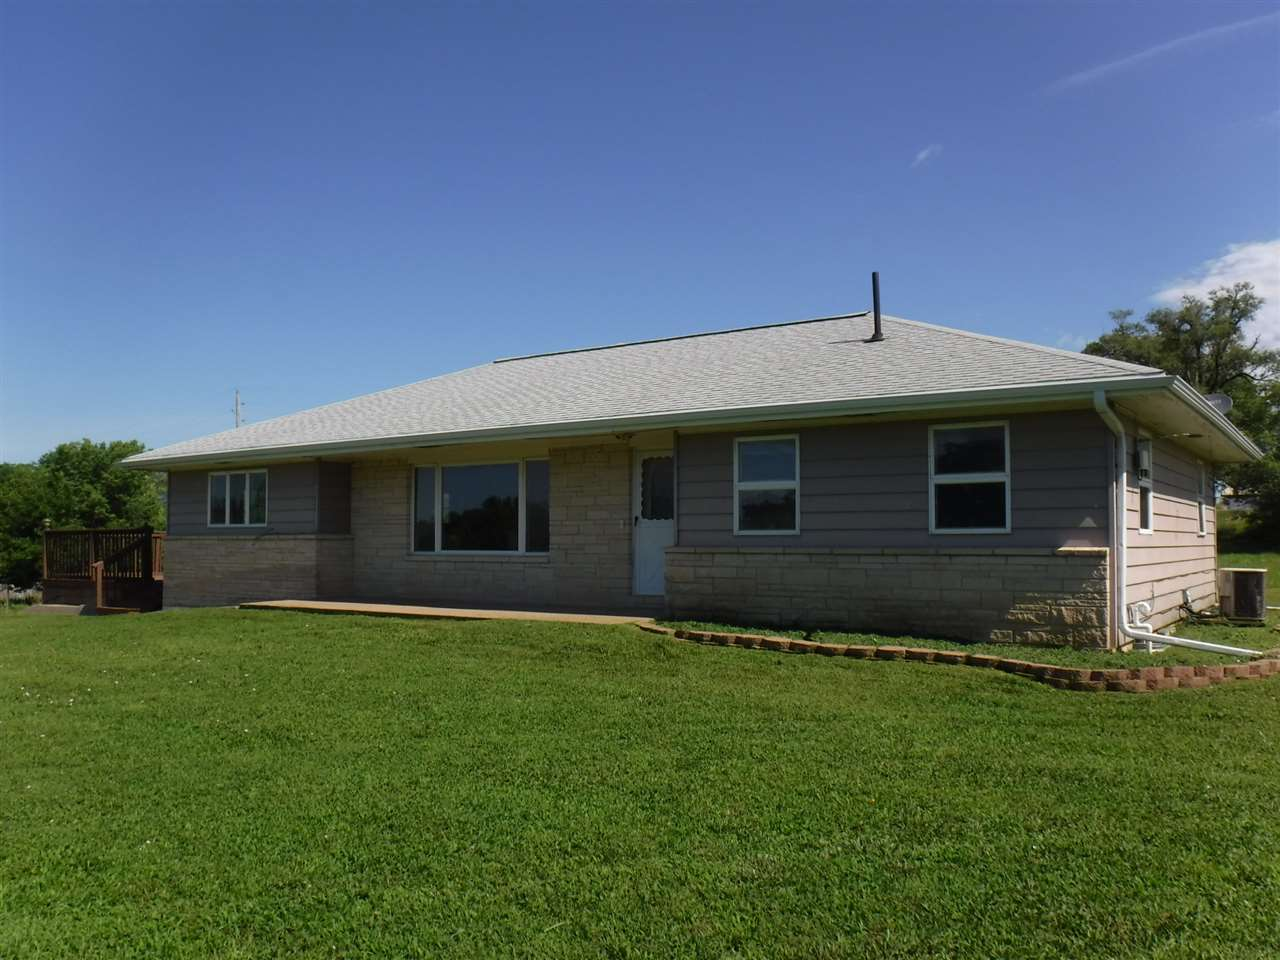 530 E 6th St, Strong City, KS, 66869